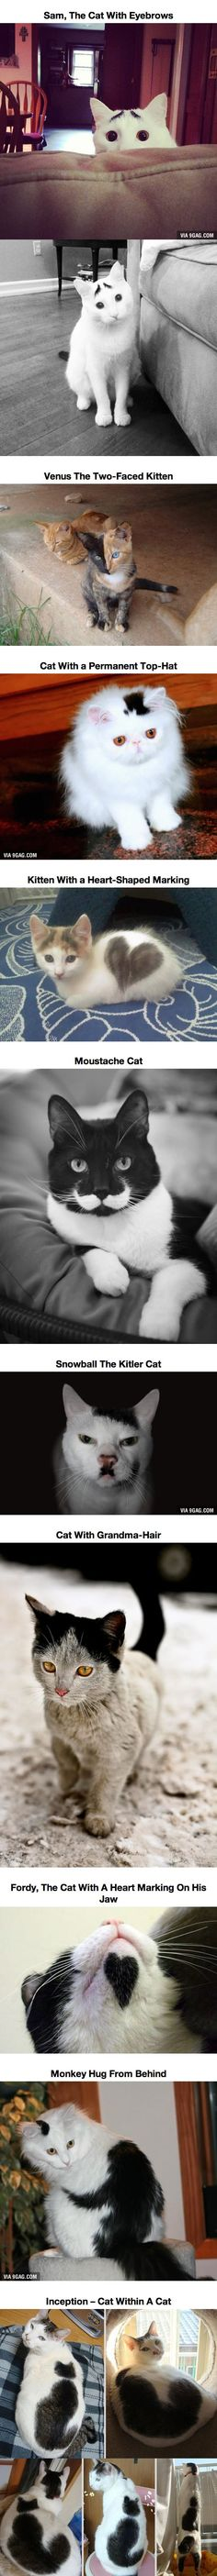 10 Cats That Got Famous For Their Awesome Fur Markings - 9GAG